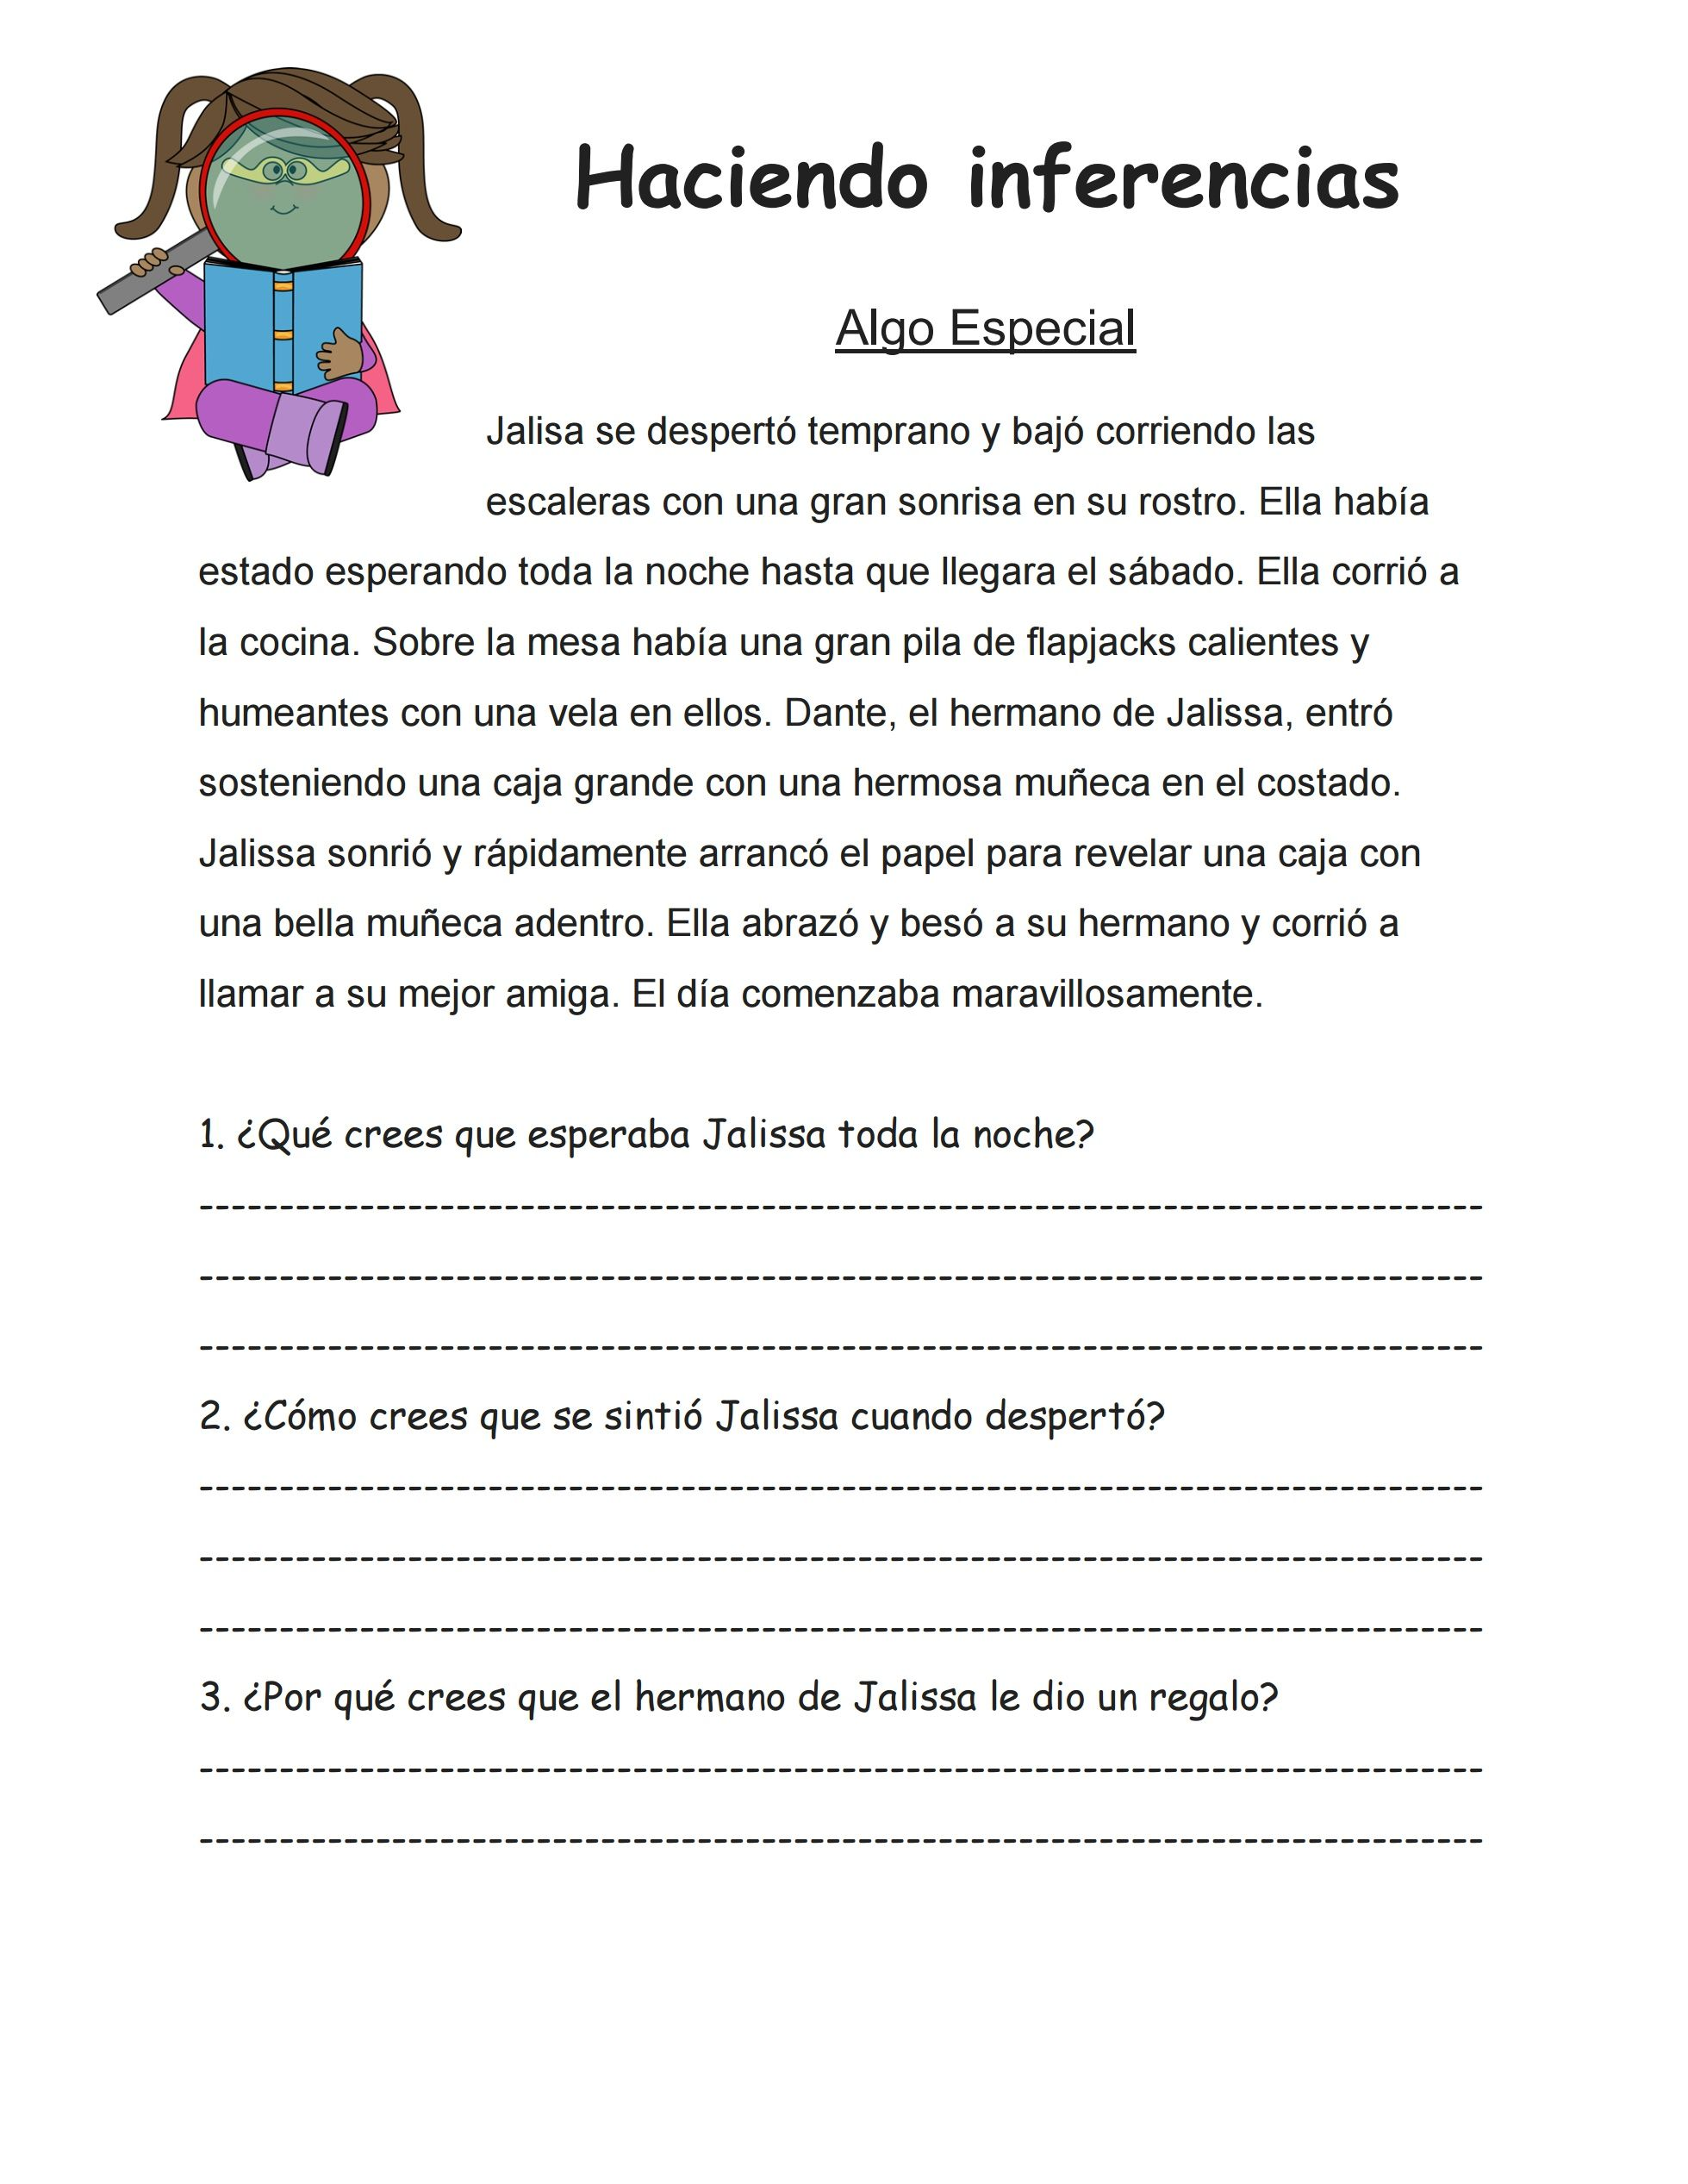 This Is An Inferencing Worksheet I Created To Use With My